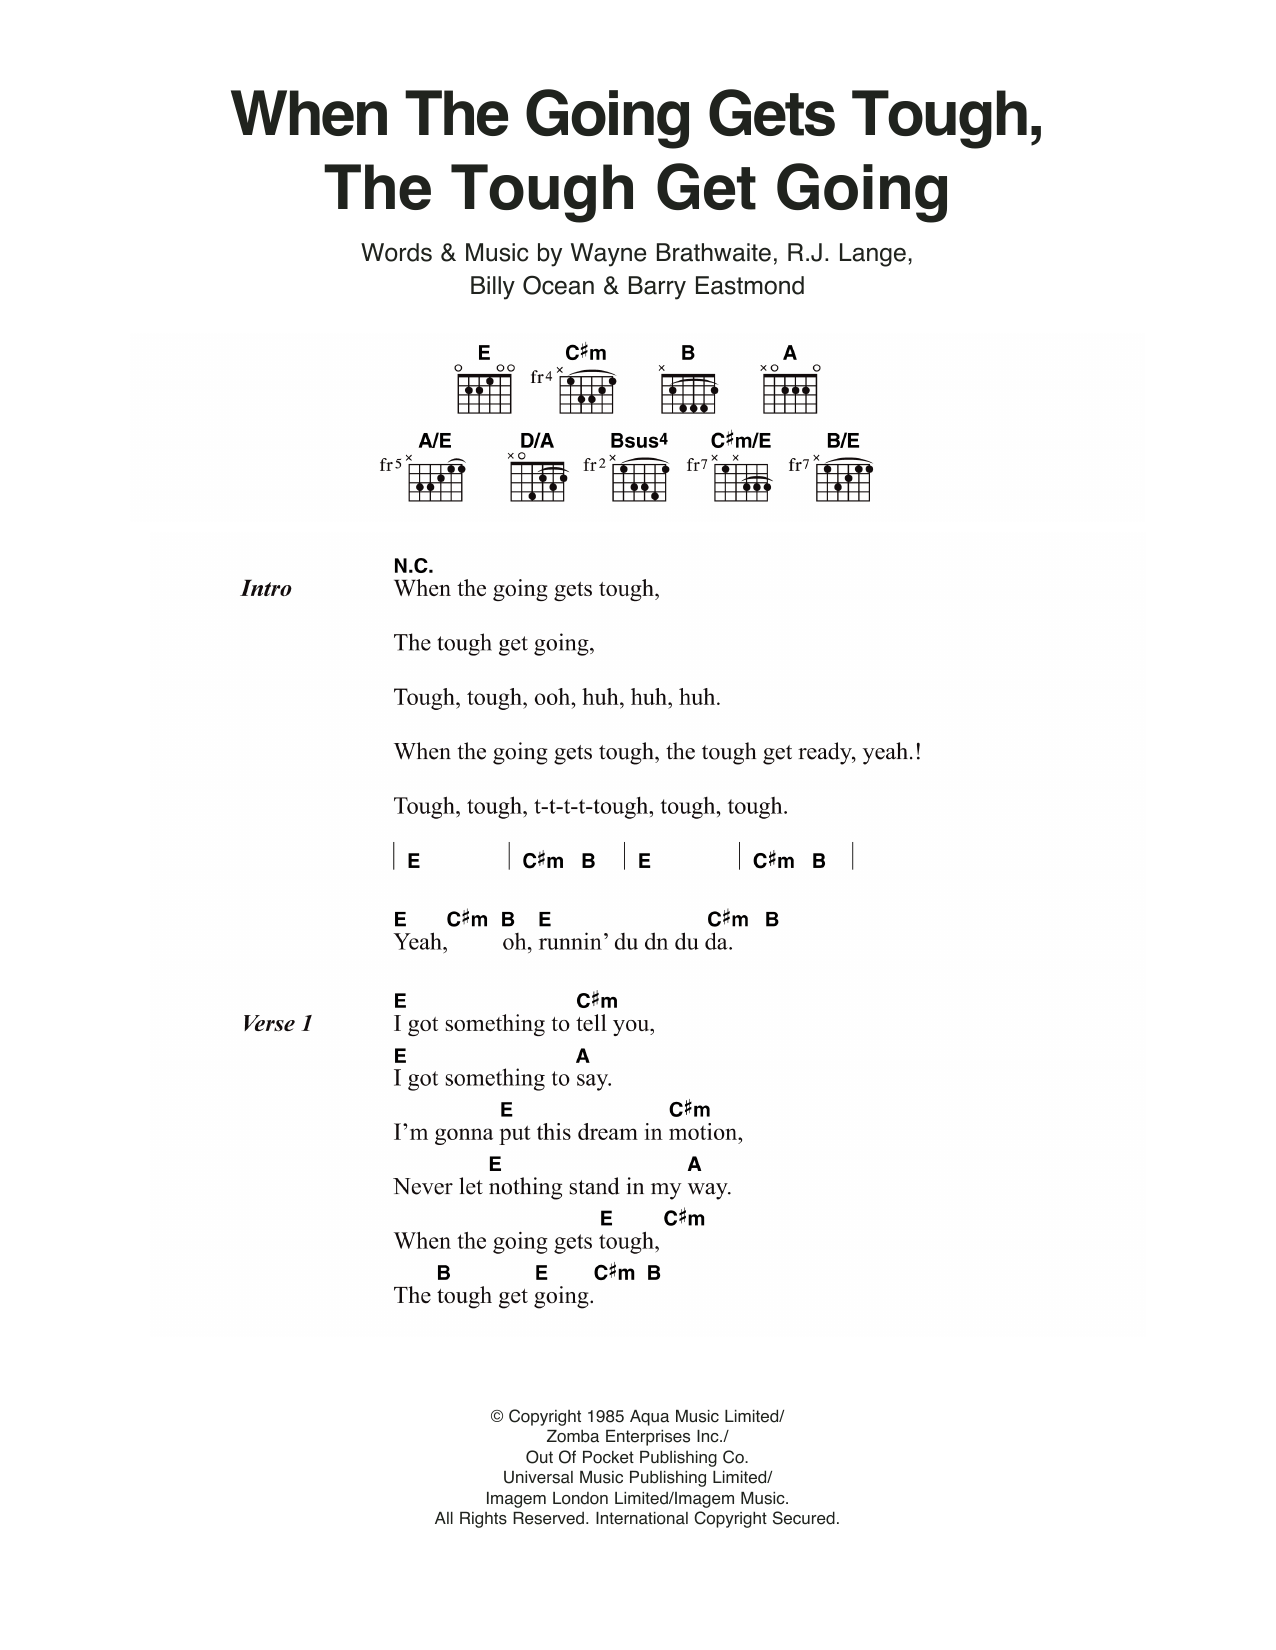 Billy Ocean - When The Going Gets Tough, The Tough Get Going